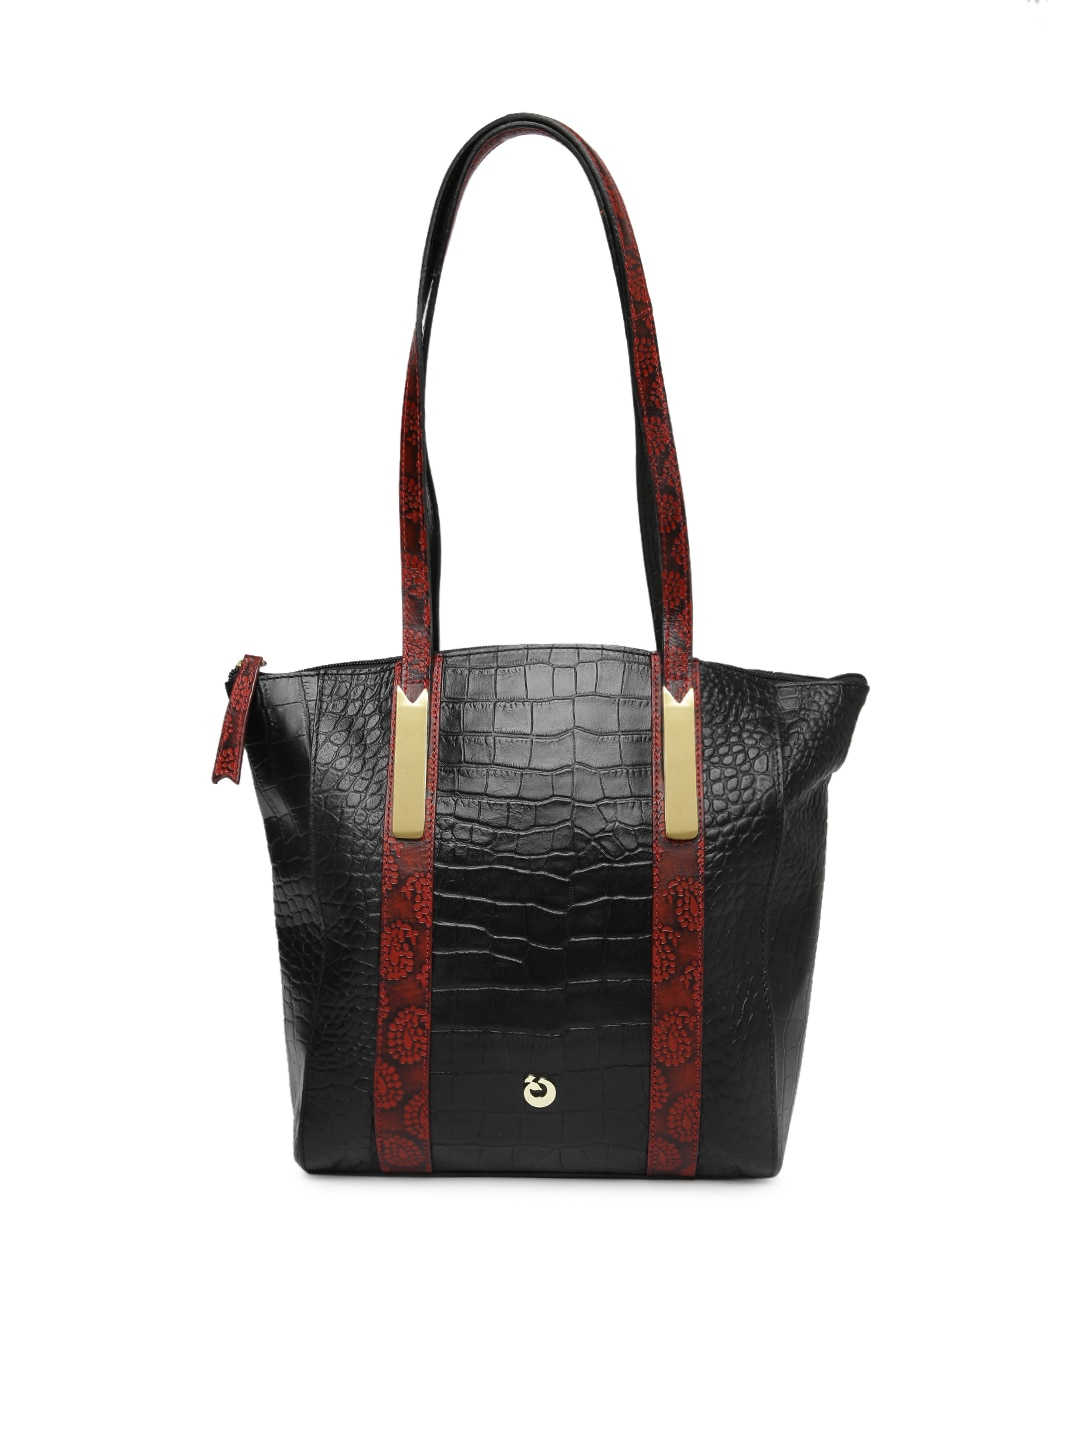 0d966c7a3ce Handbags for Women - Buy Leather Handbags, Designer Handbags for women  Online   Myntra